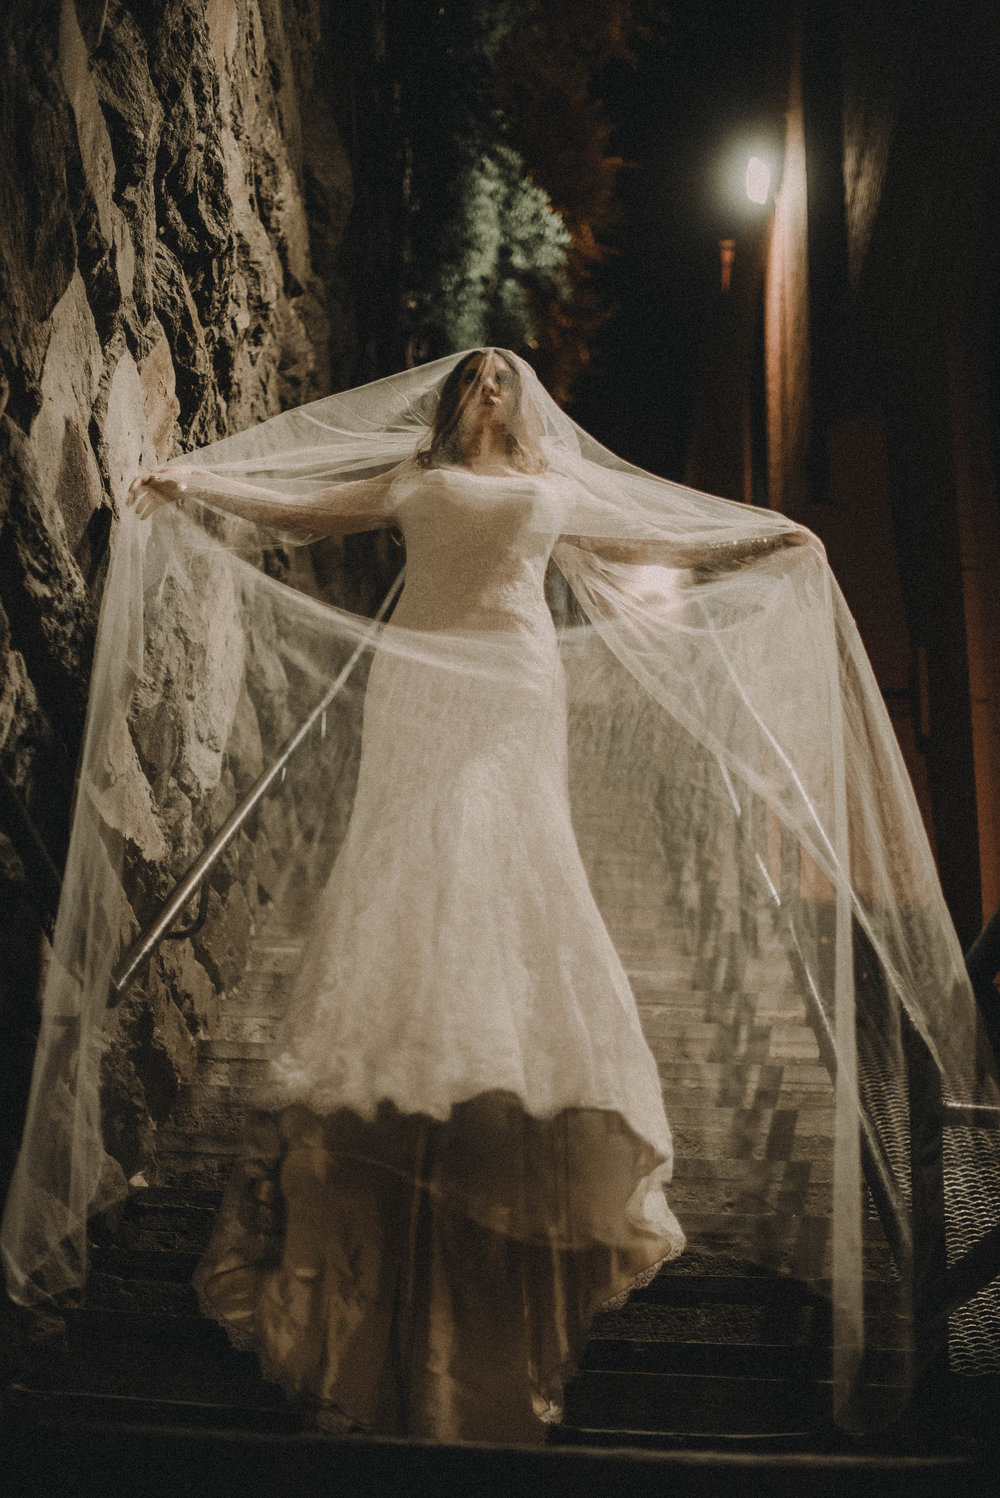 Bride floating down stairs